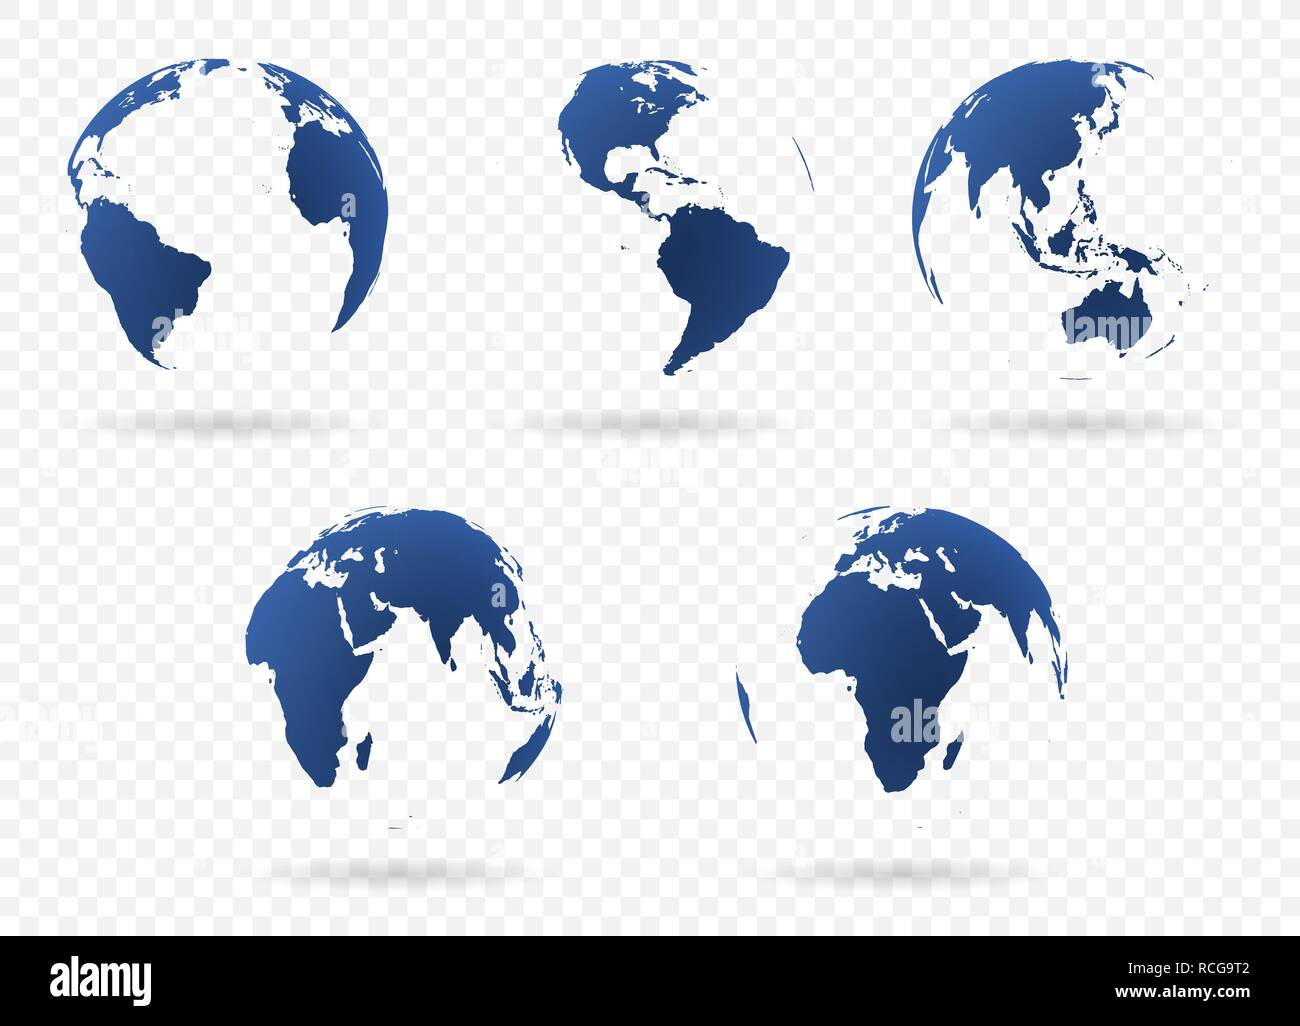 Set of Earth globe icon in different views  Highly detailed